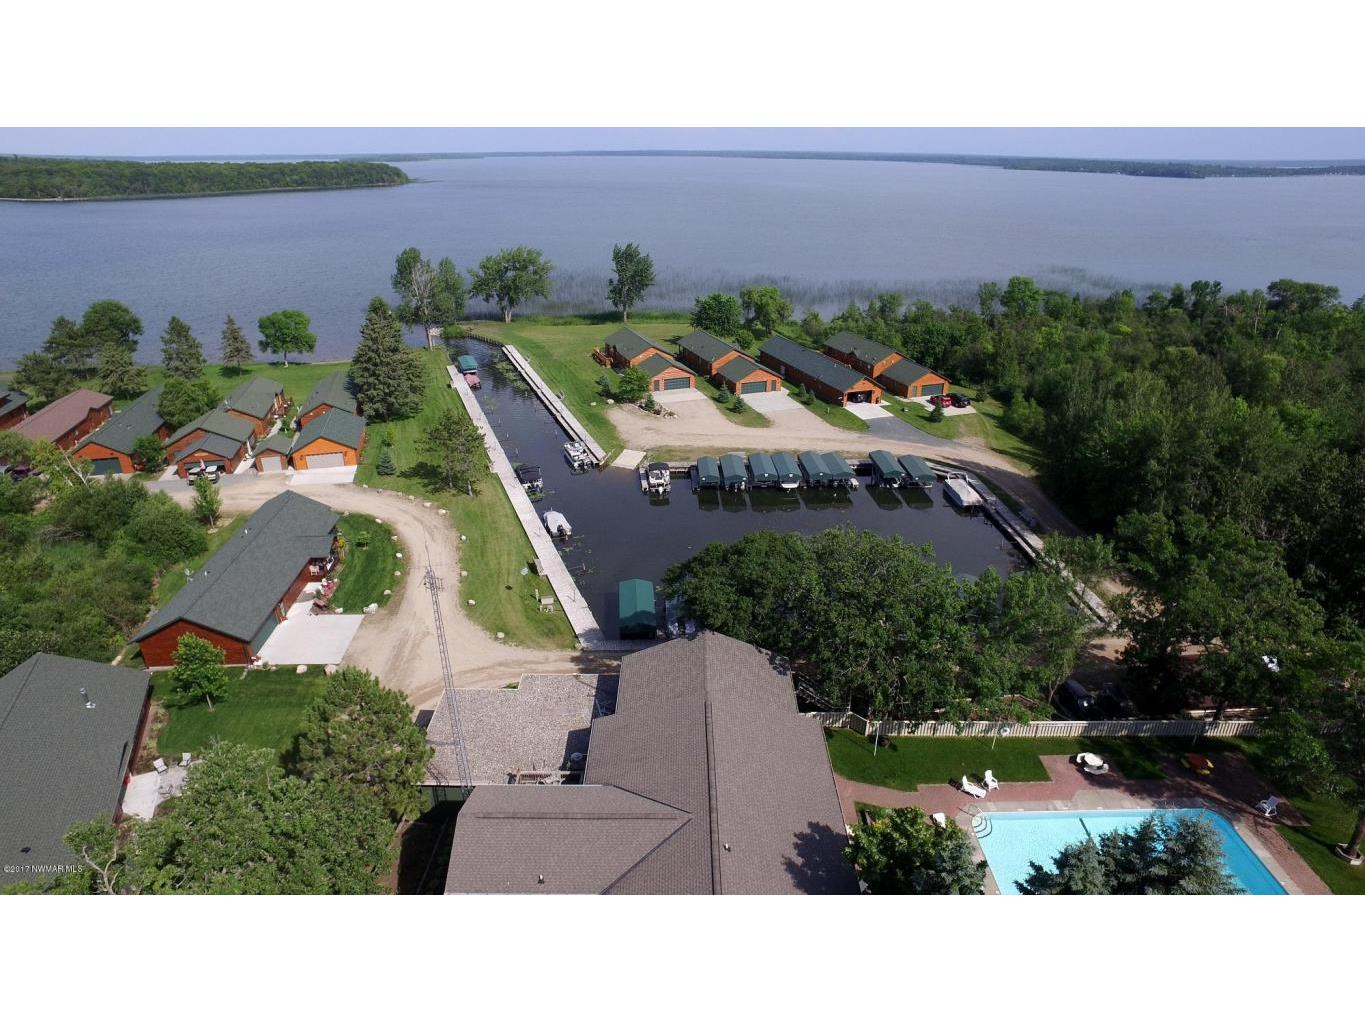 cass lake chatrooms See all available apartments for rent at cass lake shore club apartments in waterford, mi cass lake shore club apartments has rental units ranging from 809-1200 sq ft starting at $625.